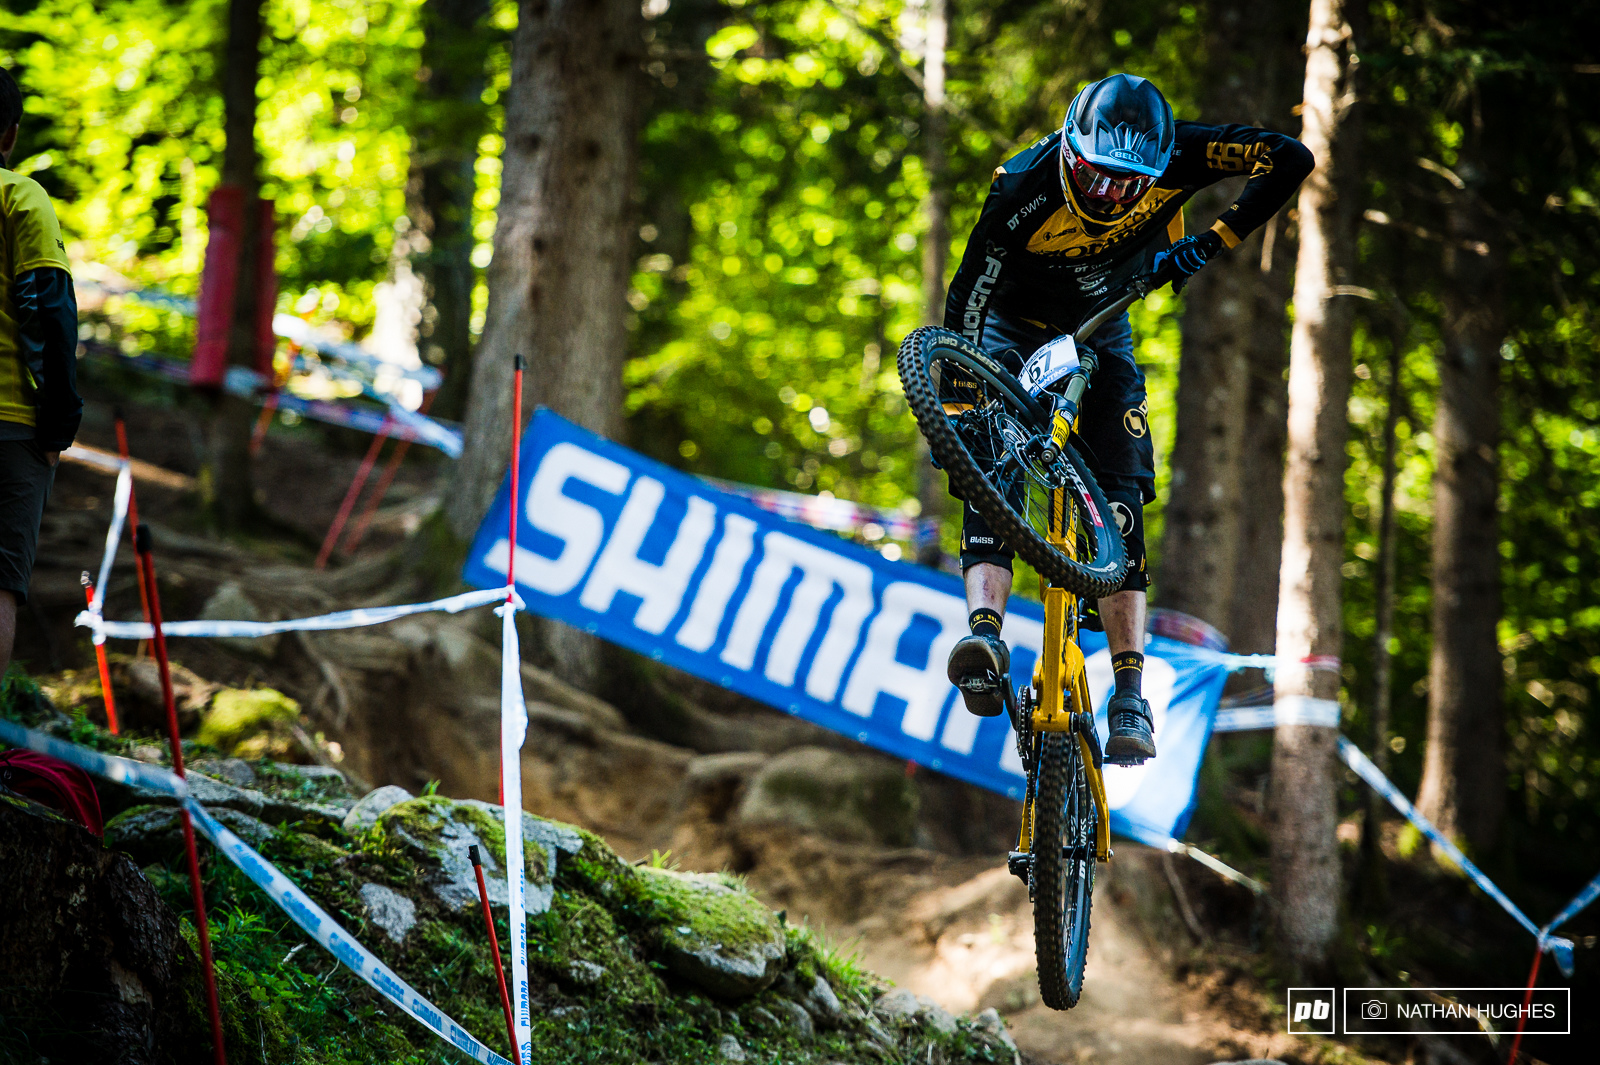 A common utterance in the forest this season was if Phil Atwill stays on his bike he ll have a top result . Well at the last opportunity he managed it... A first elite top 20 for the wildman wildcard.